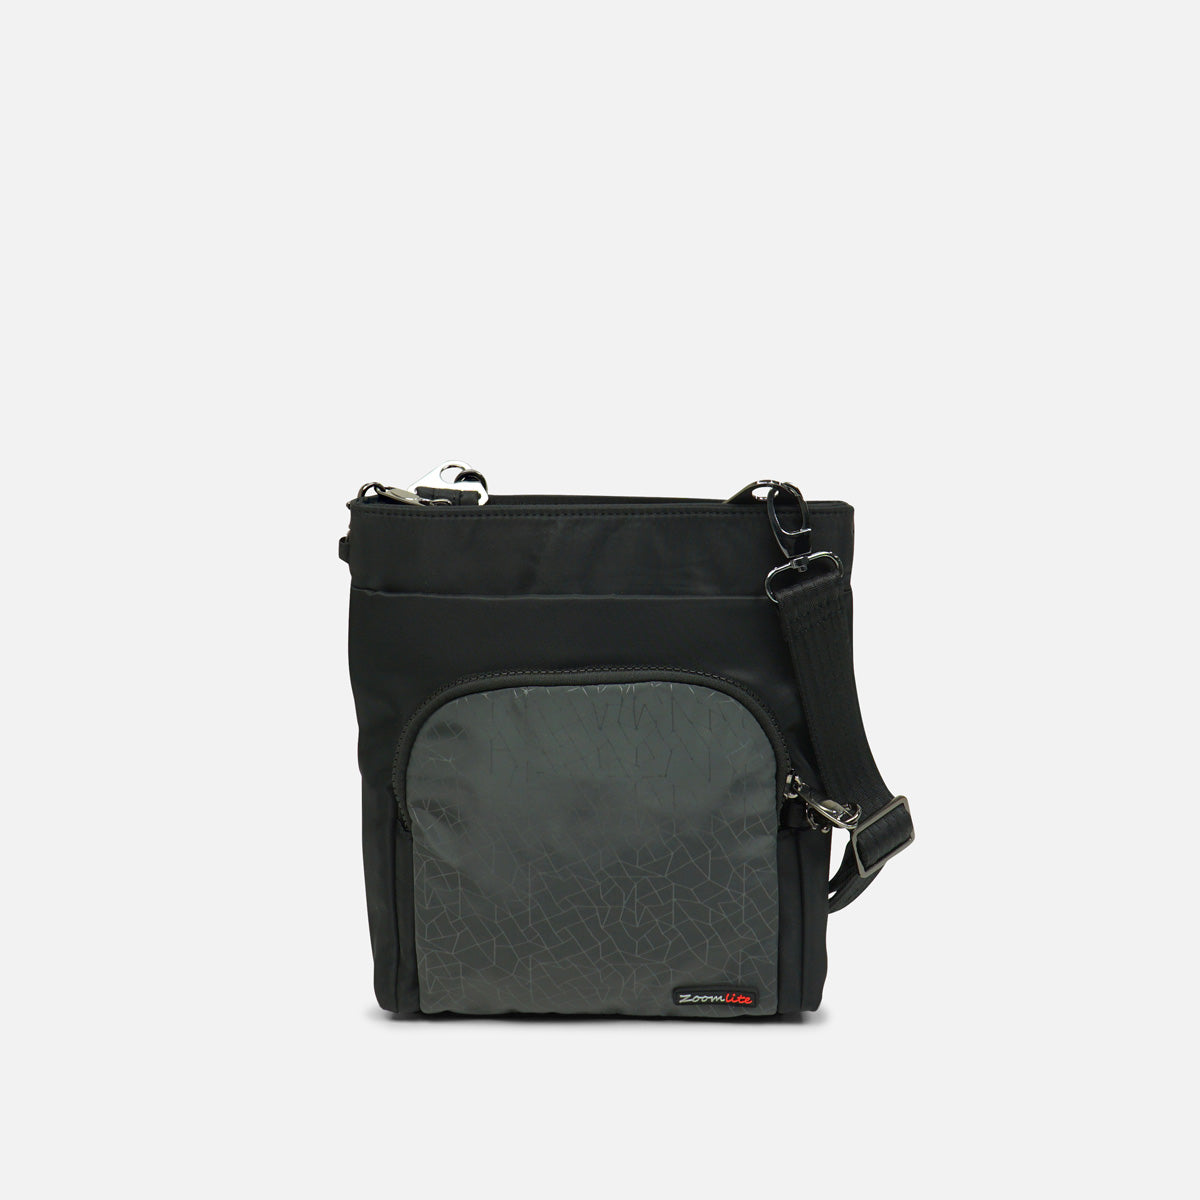 Hamilton Anti-Theft Crossbody Organiser